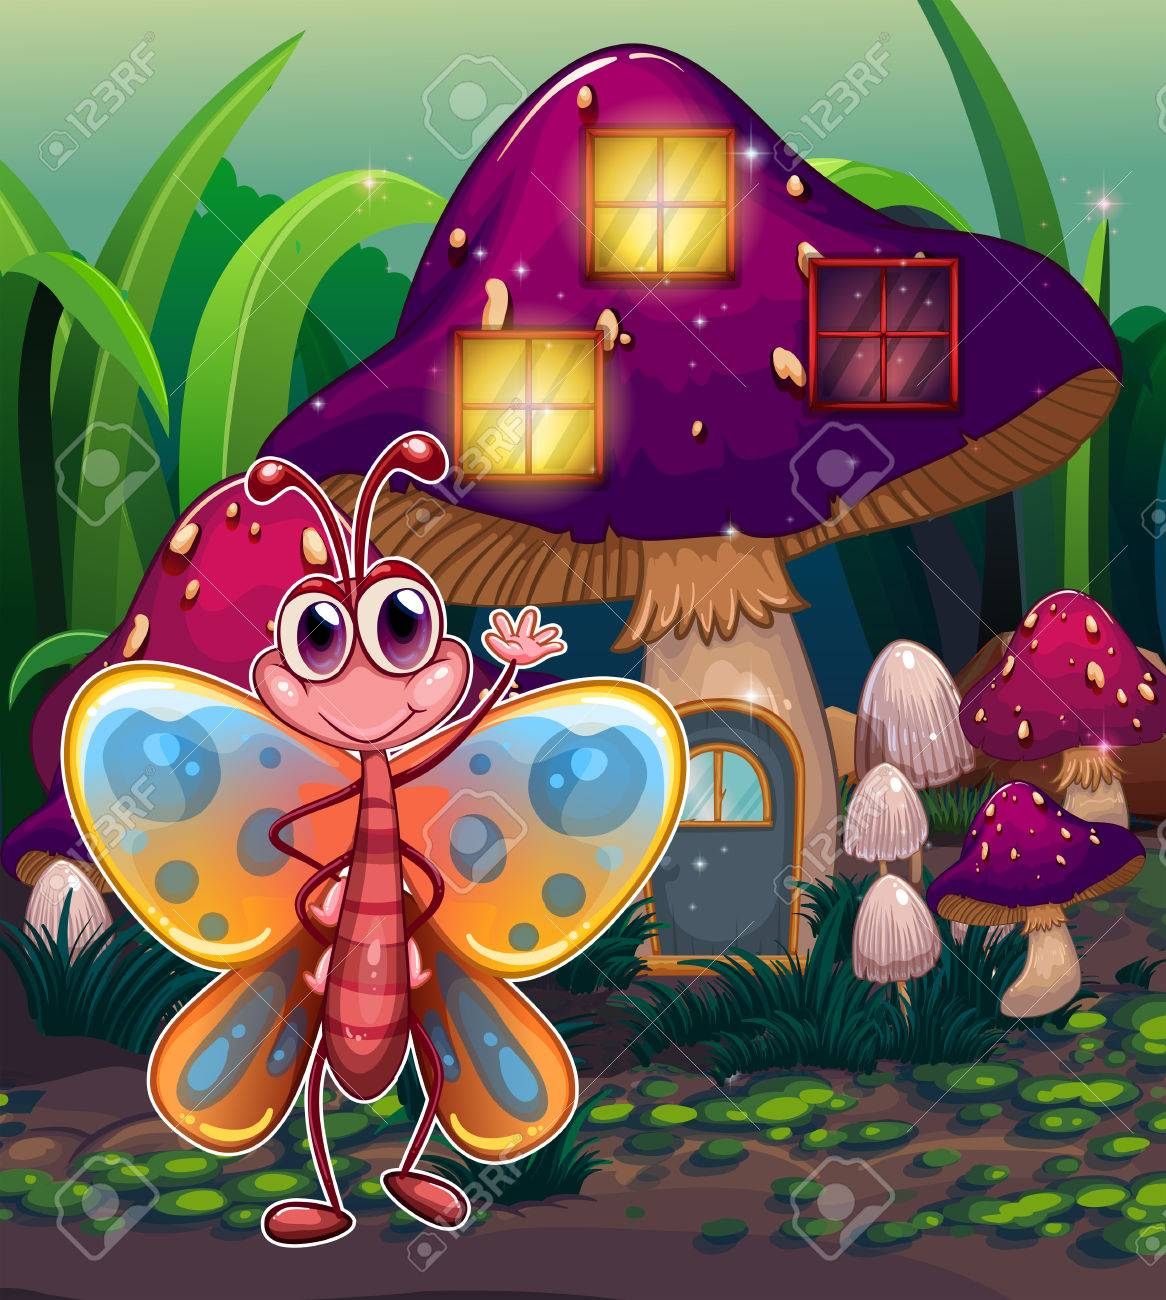 Illustration of a butterfly in front of the mushroom house Stock Vector - 22404760